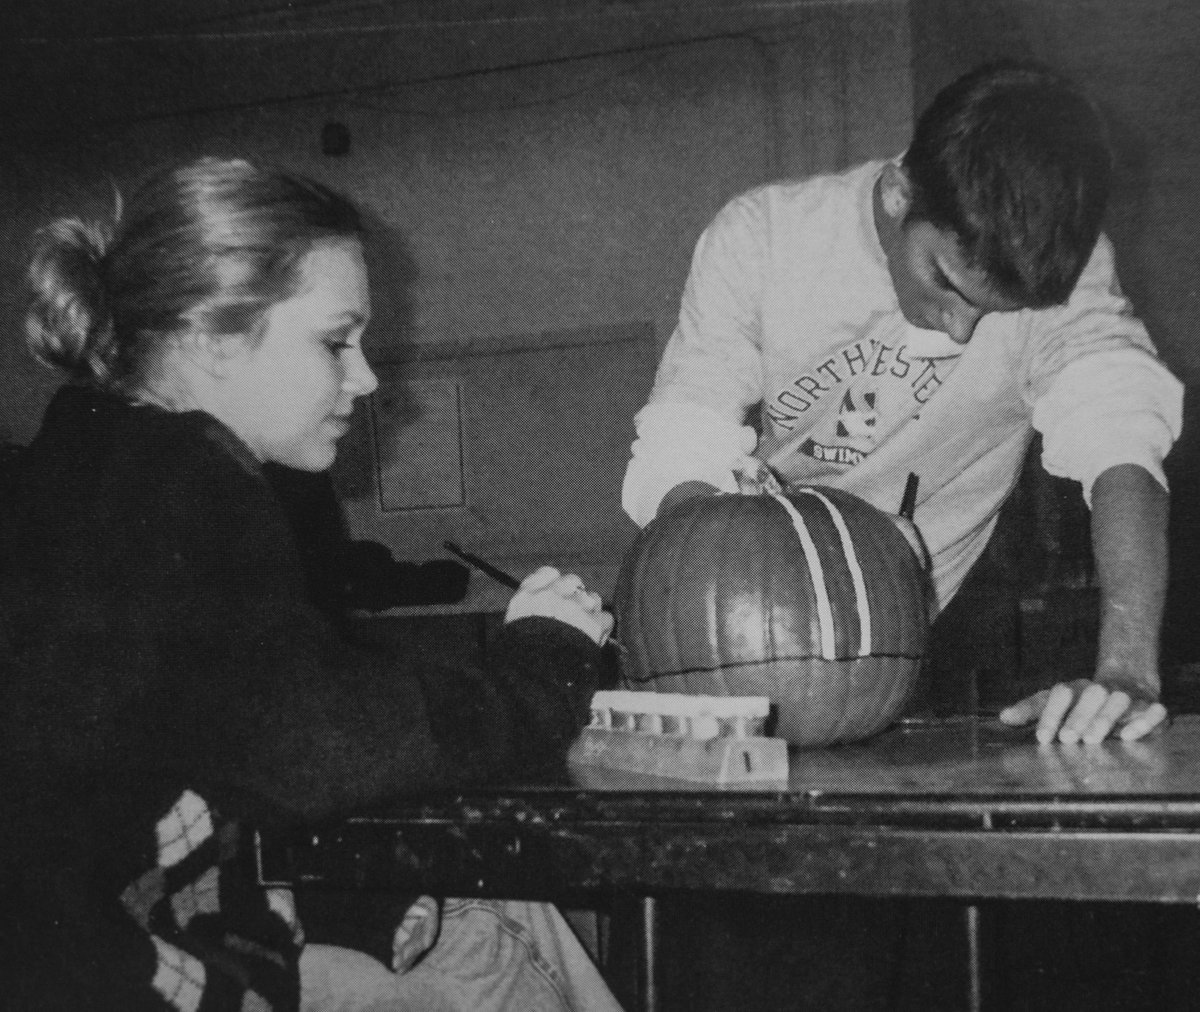 🎃🍂 Oh my gourdness! Look what we came across! 😊 This #TBT takes us back to Art Club students painting pumpkins for a fall fundraiser. Our Prexies are pretty FA-BOO-LOUS! #WeRPrexies